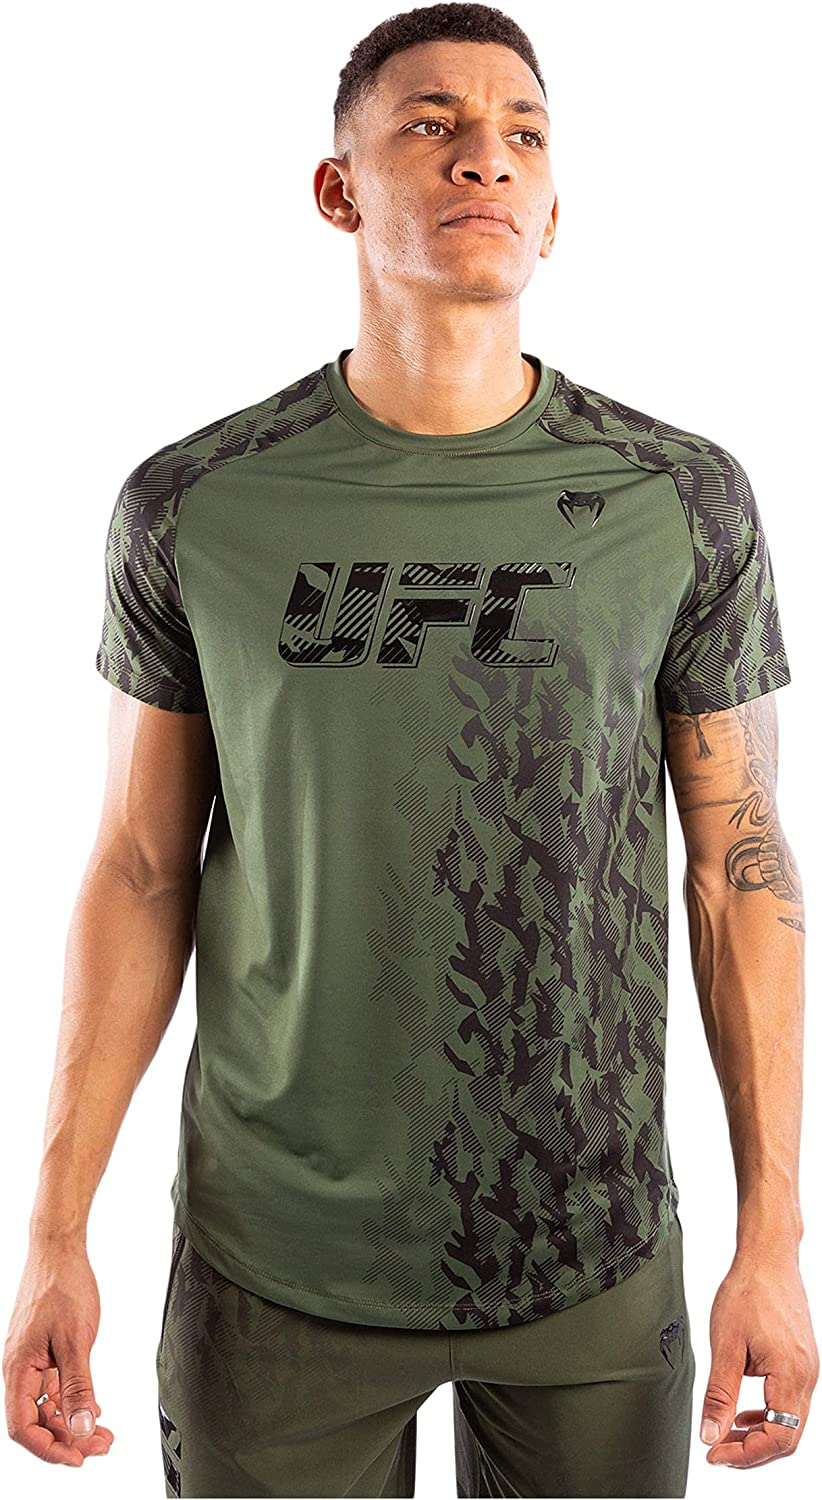 Venum Officially Licensed 2021 autumn and winter new UFC Mens Week Performa Authentic Limited price sale Fight